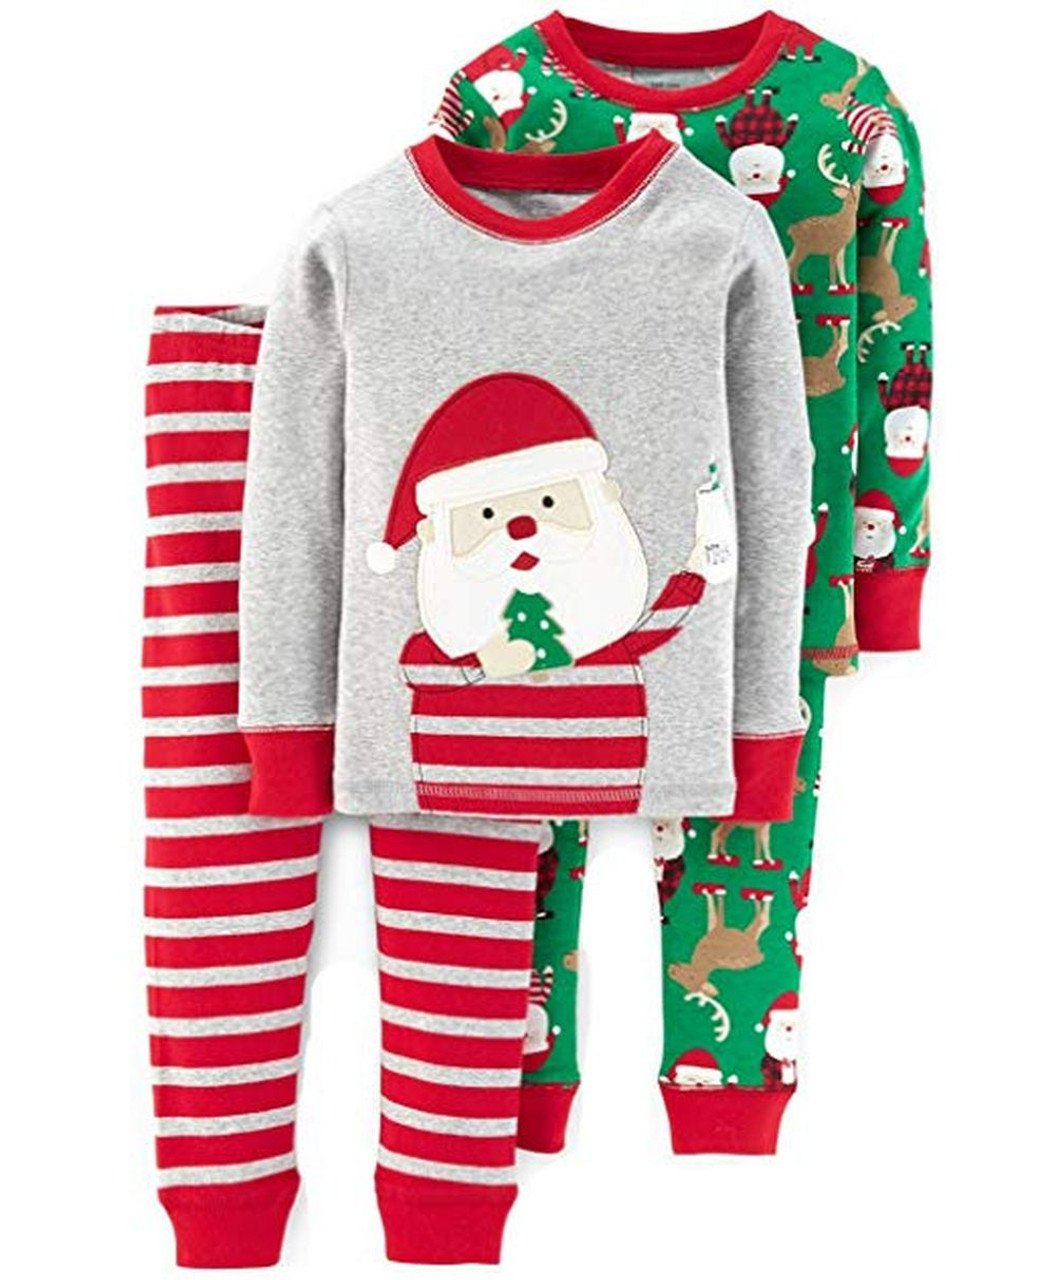 Just One You//Carters Red Fleece Christmas//Holiday Long Sleeve Nightgown//Pajamas